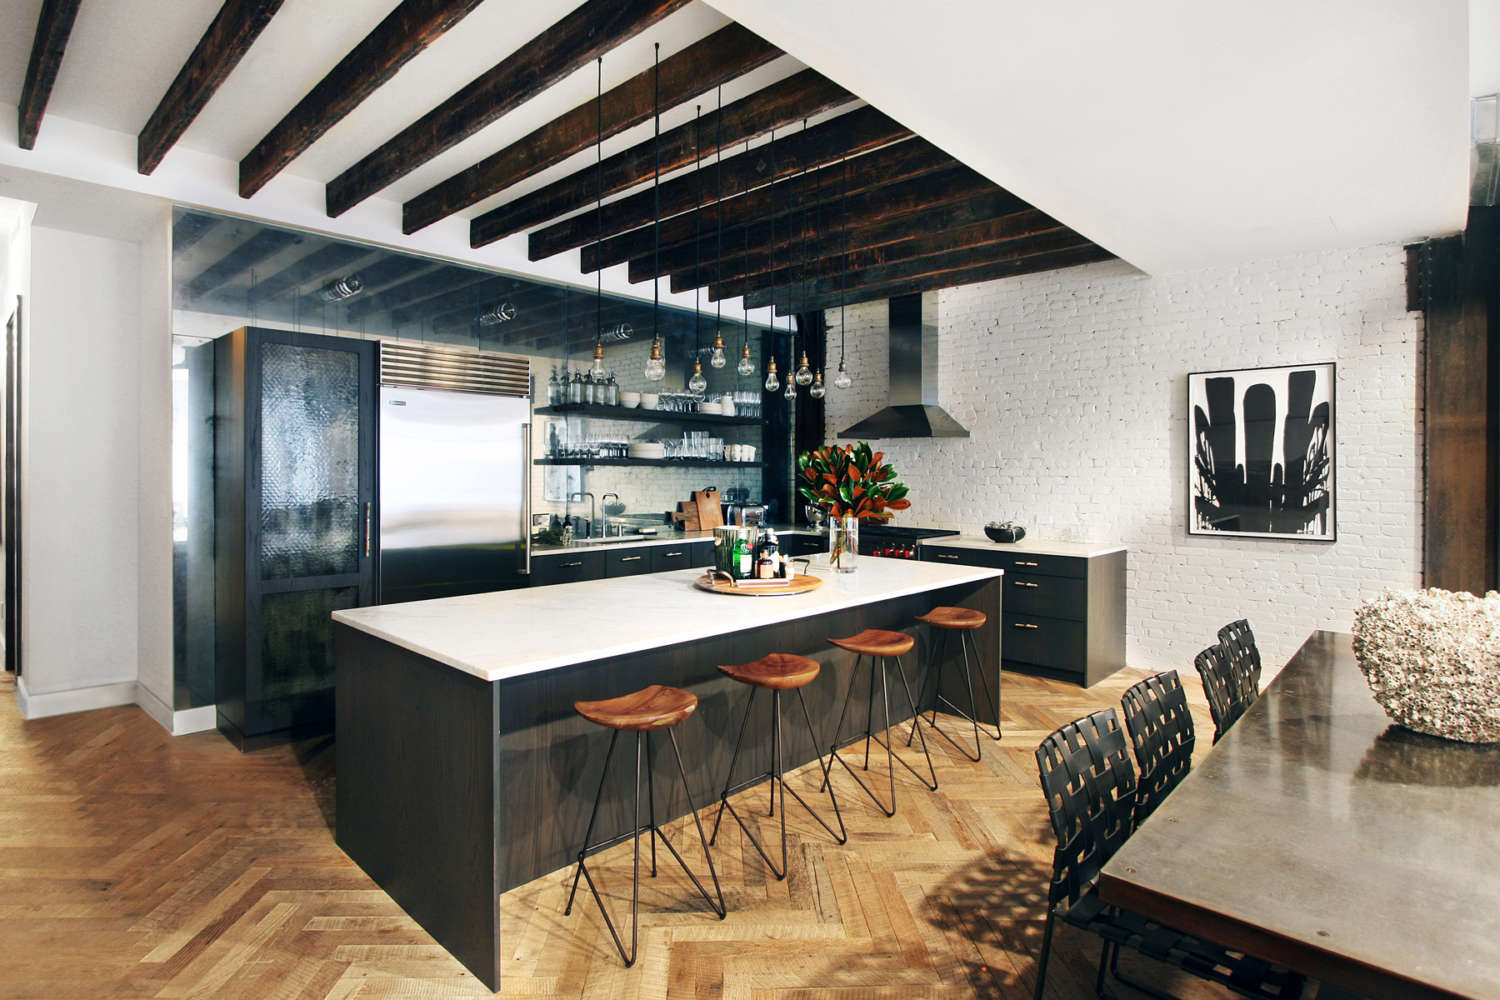 NYC L-shaped loft kitchen features flat panel, frameless fully custom Artcraft cabinetry in smoky oak and open, floating shelving. Large island with seating has a light quartz countertop, and herrigbone oak flooring and whitewashed brick walls adds textural accents. Design by Daniel Popescu of Bilotta Kitchens.